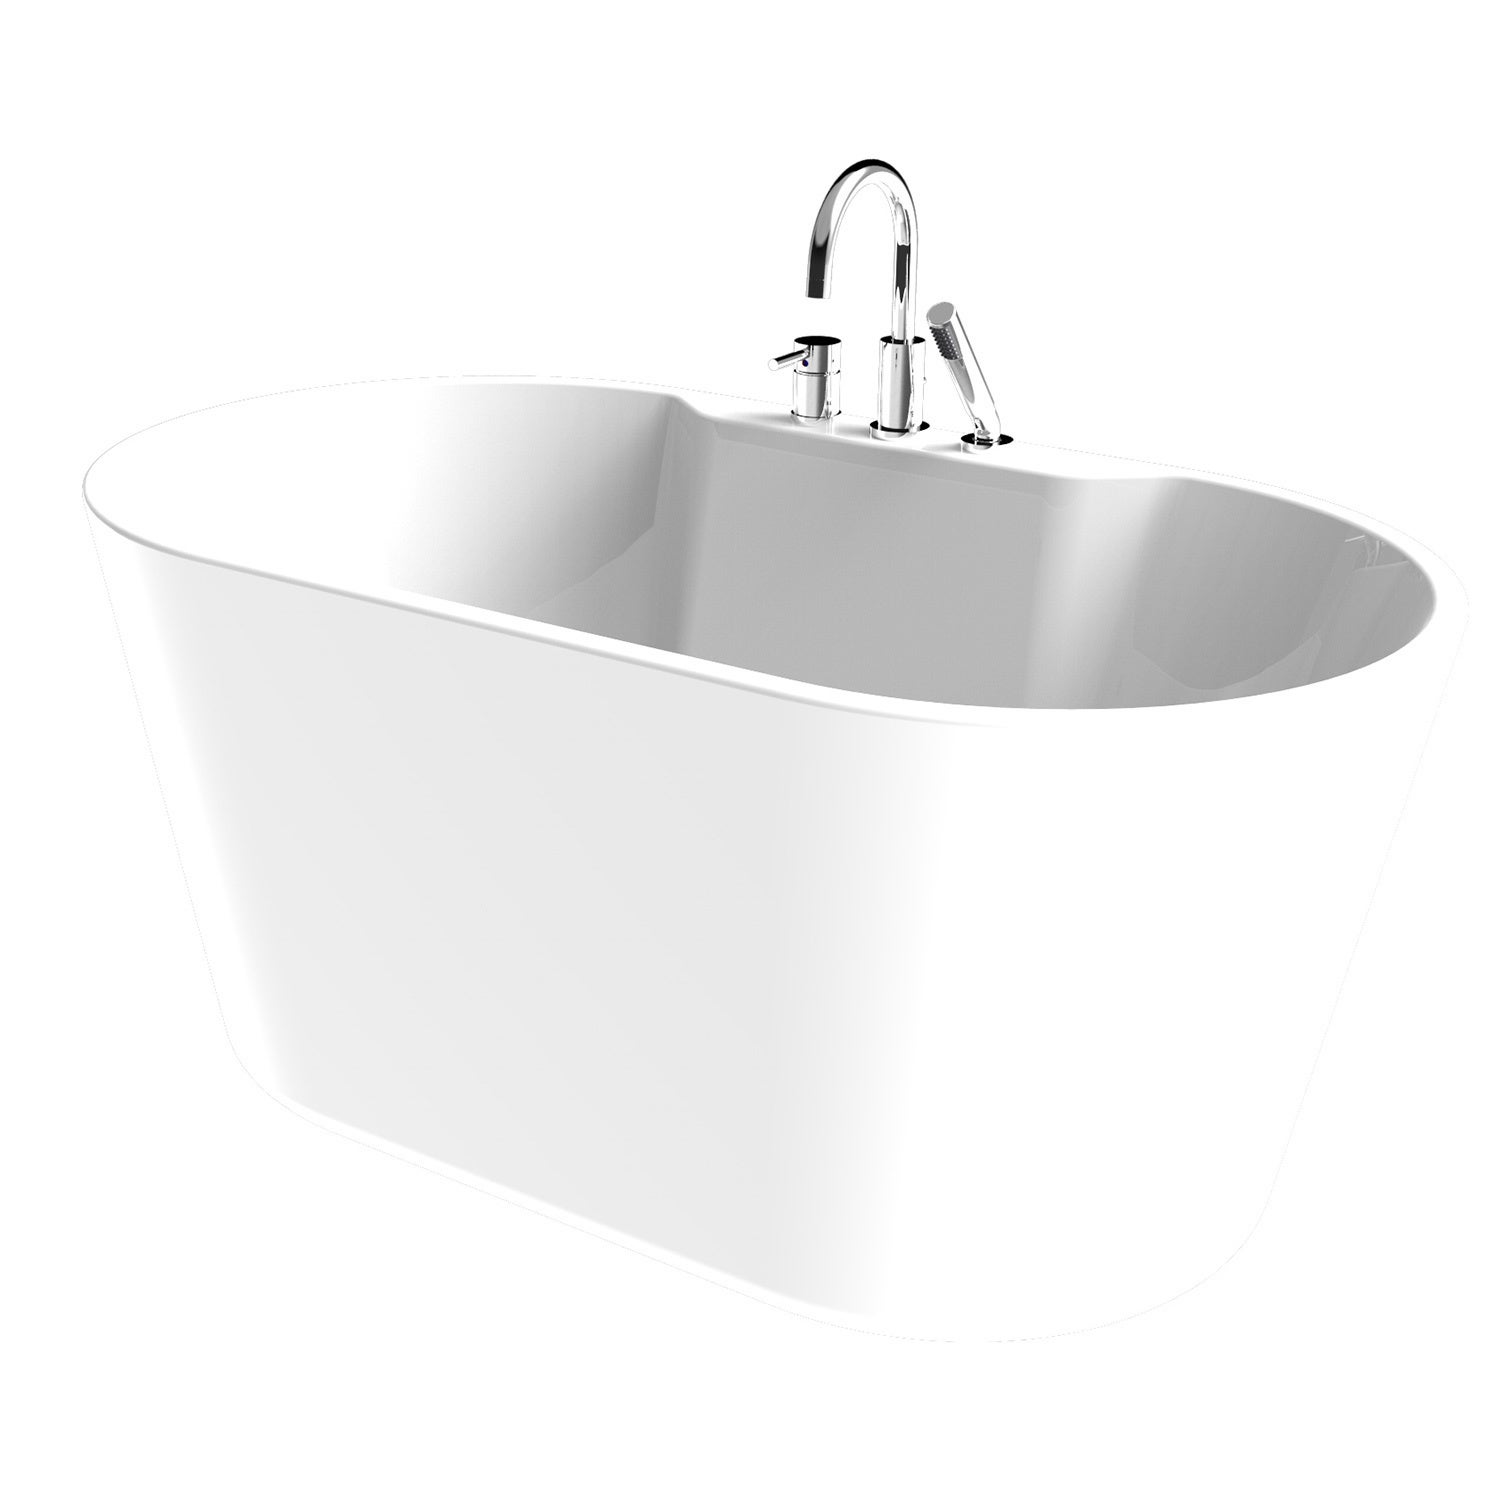 free standing tub sizes. Retro All In One Free Standing Tub Combo  White Size Und 56 inch freestanding tub Plumbing Fixtures Compare Prices at